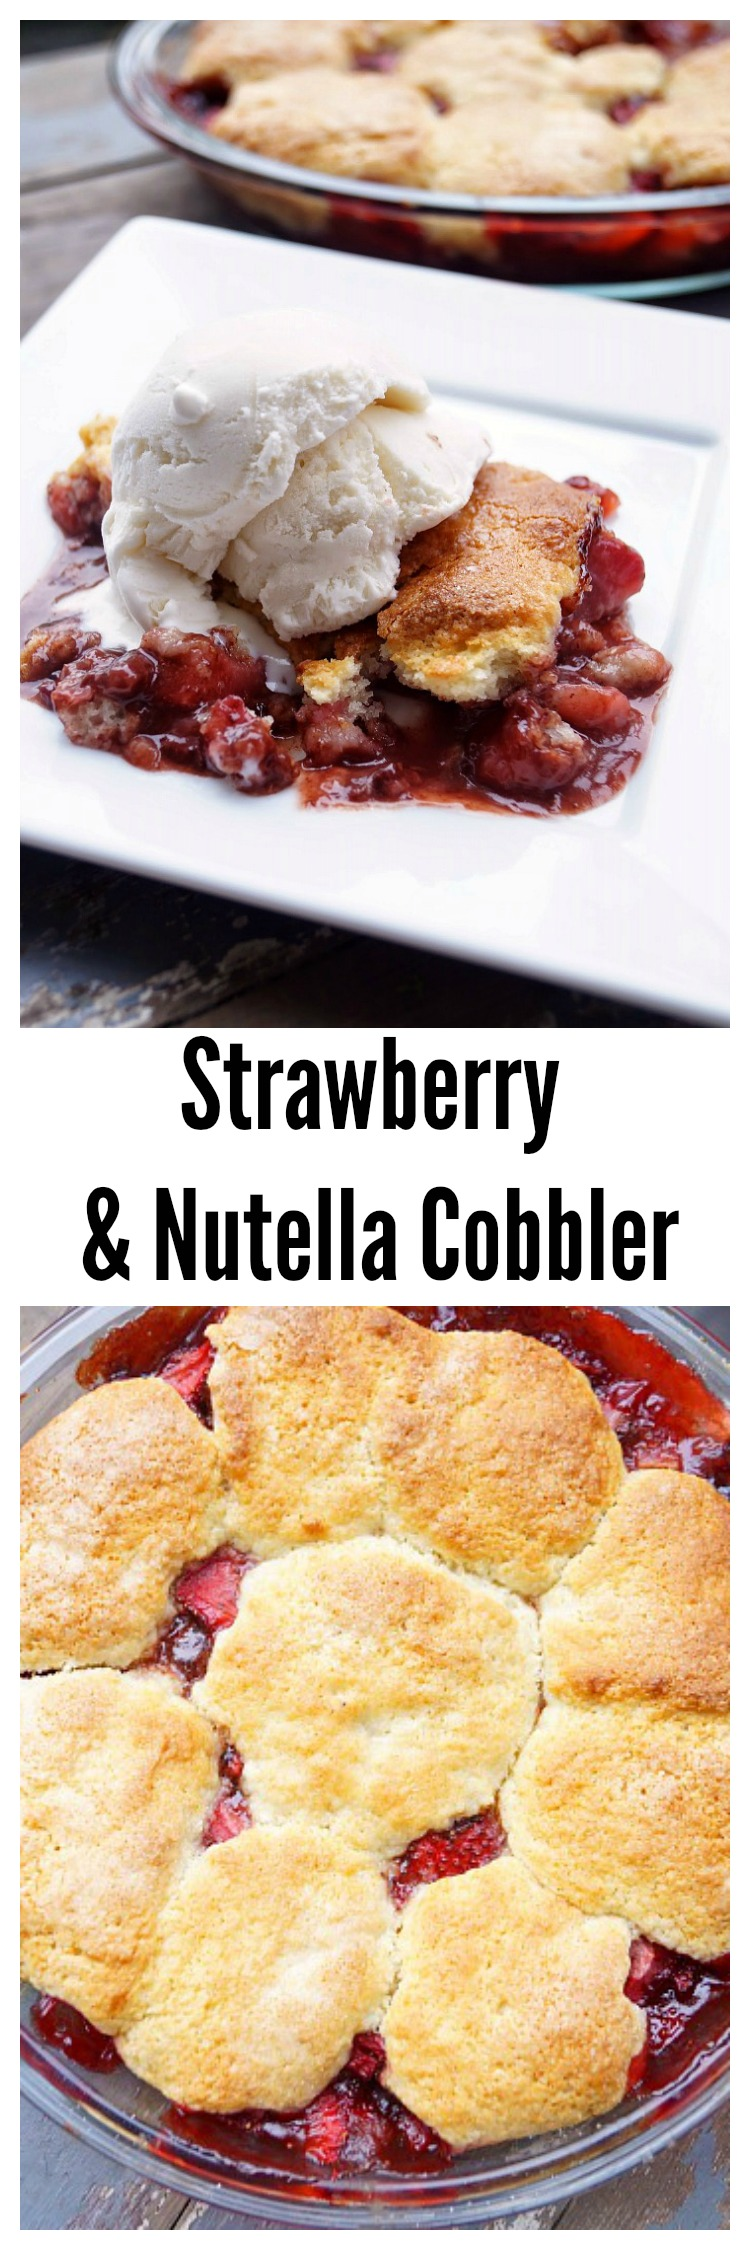 This easy strawberry and nutella cobbler is the perfect combination of sweet fruit, rich nutella, and a creamy, crumbly biscuit!